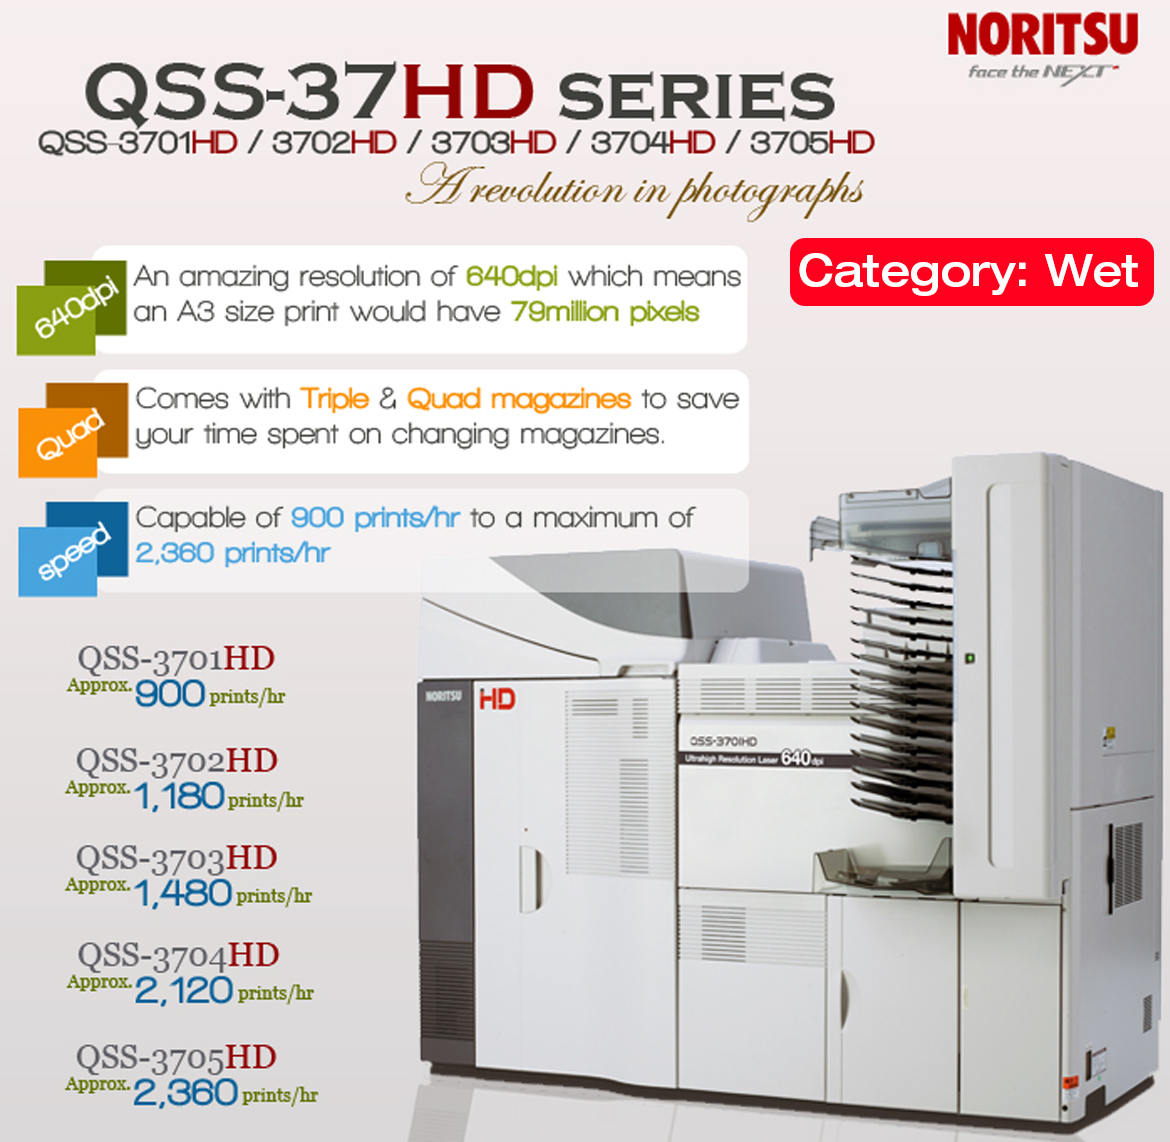 noritsu-qss-37-hd-series-teuaui-mini-lab2